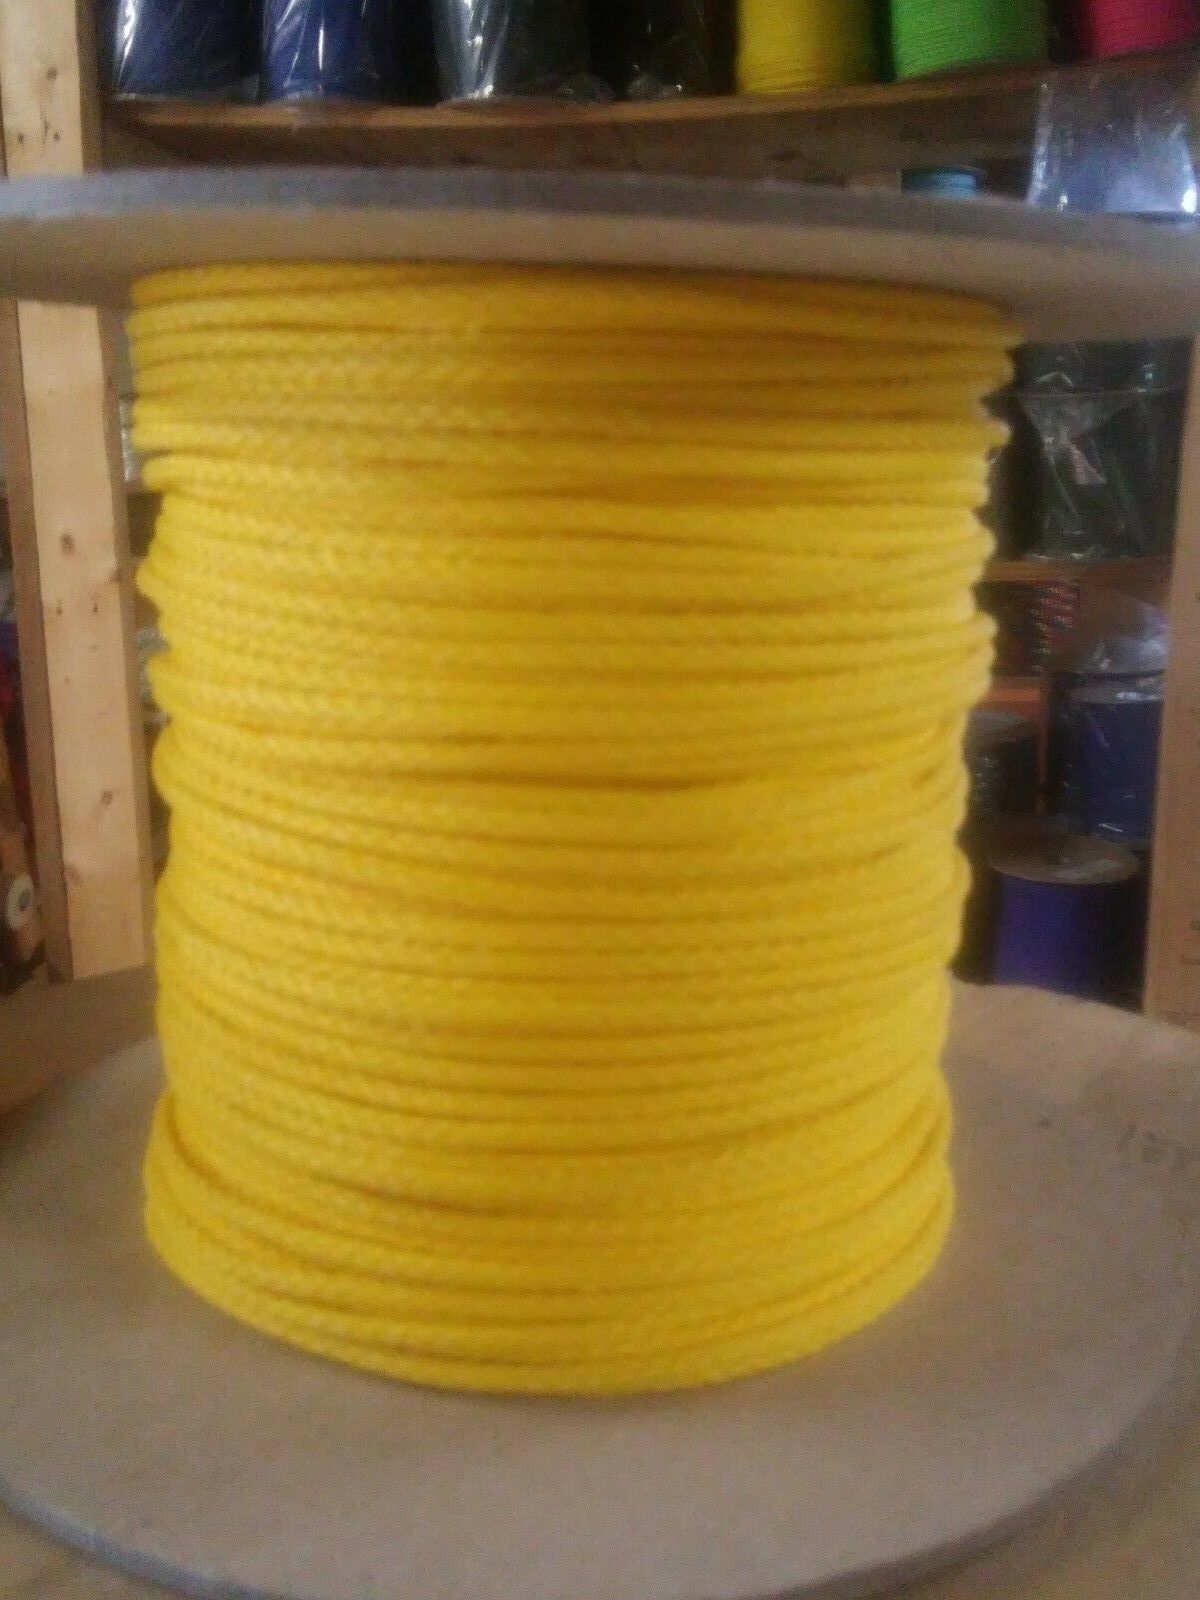 1 8  x 1000 ft.(2 lengths) Polyethylene Rope Spool. Yellow. Made in USA